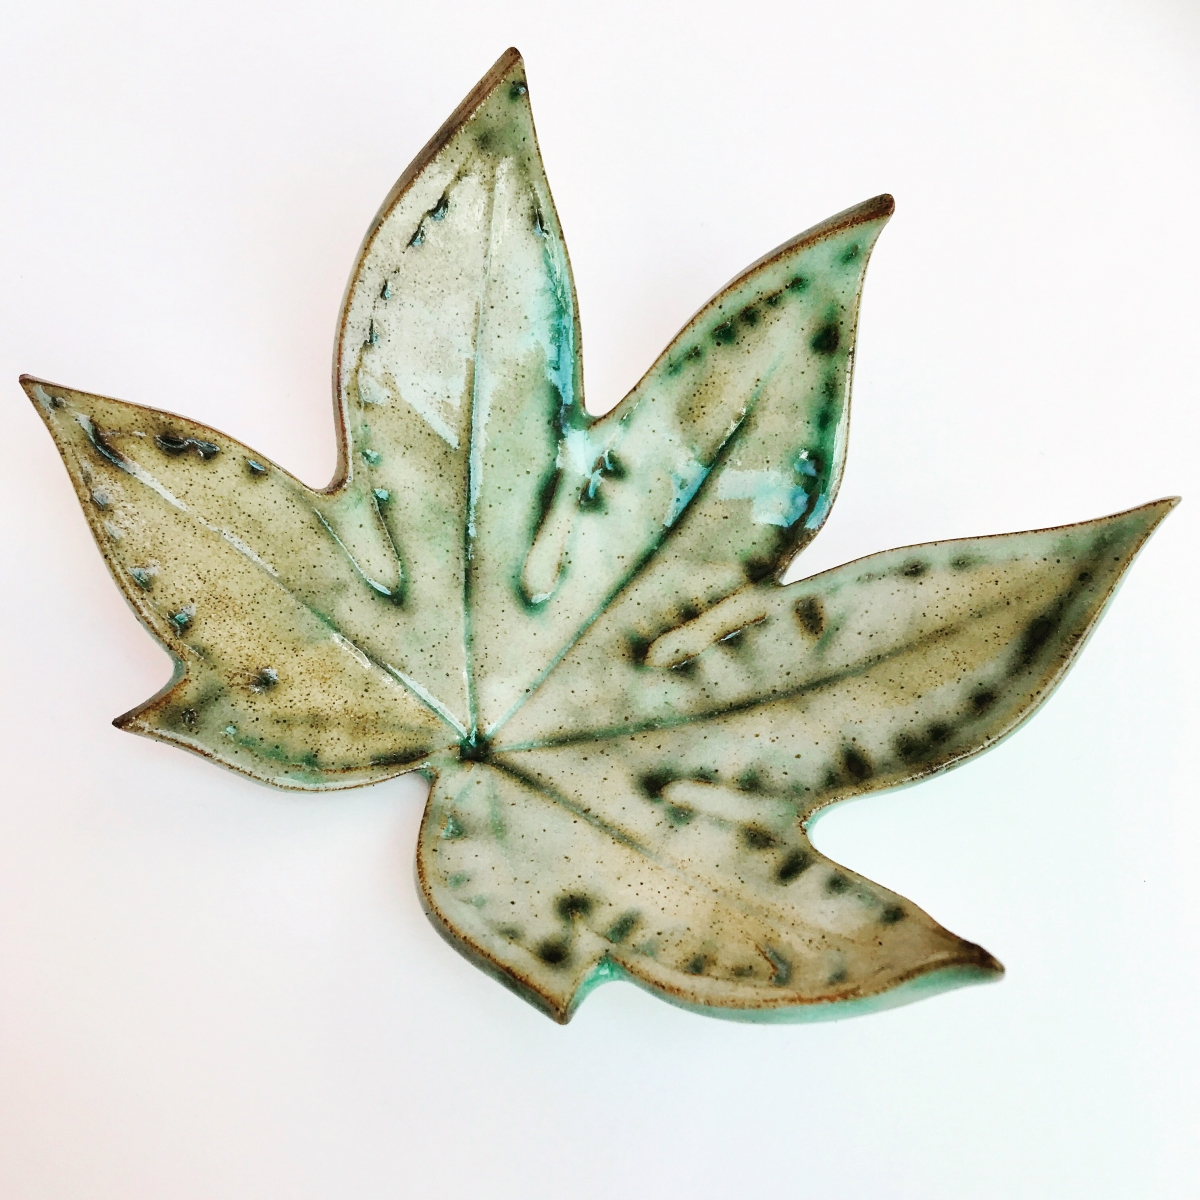 Fatsia Trinket Dish made by Ceramics Inspired by Nature